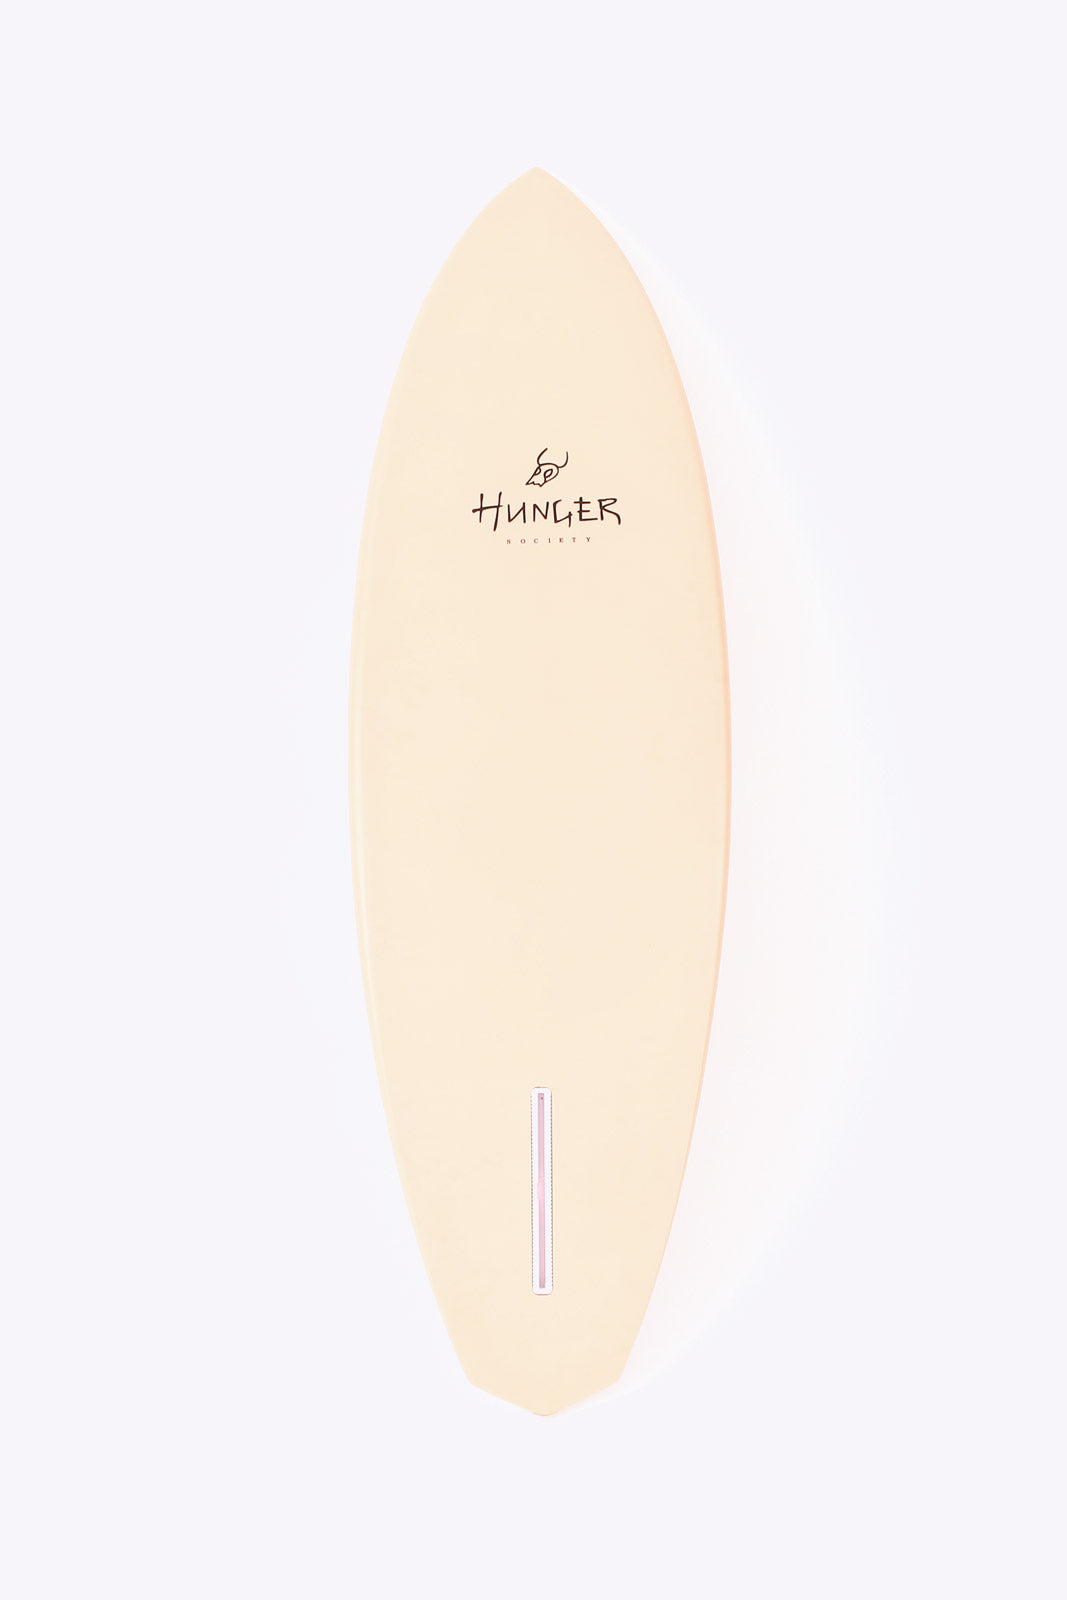 Hand Crafted Surfboards